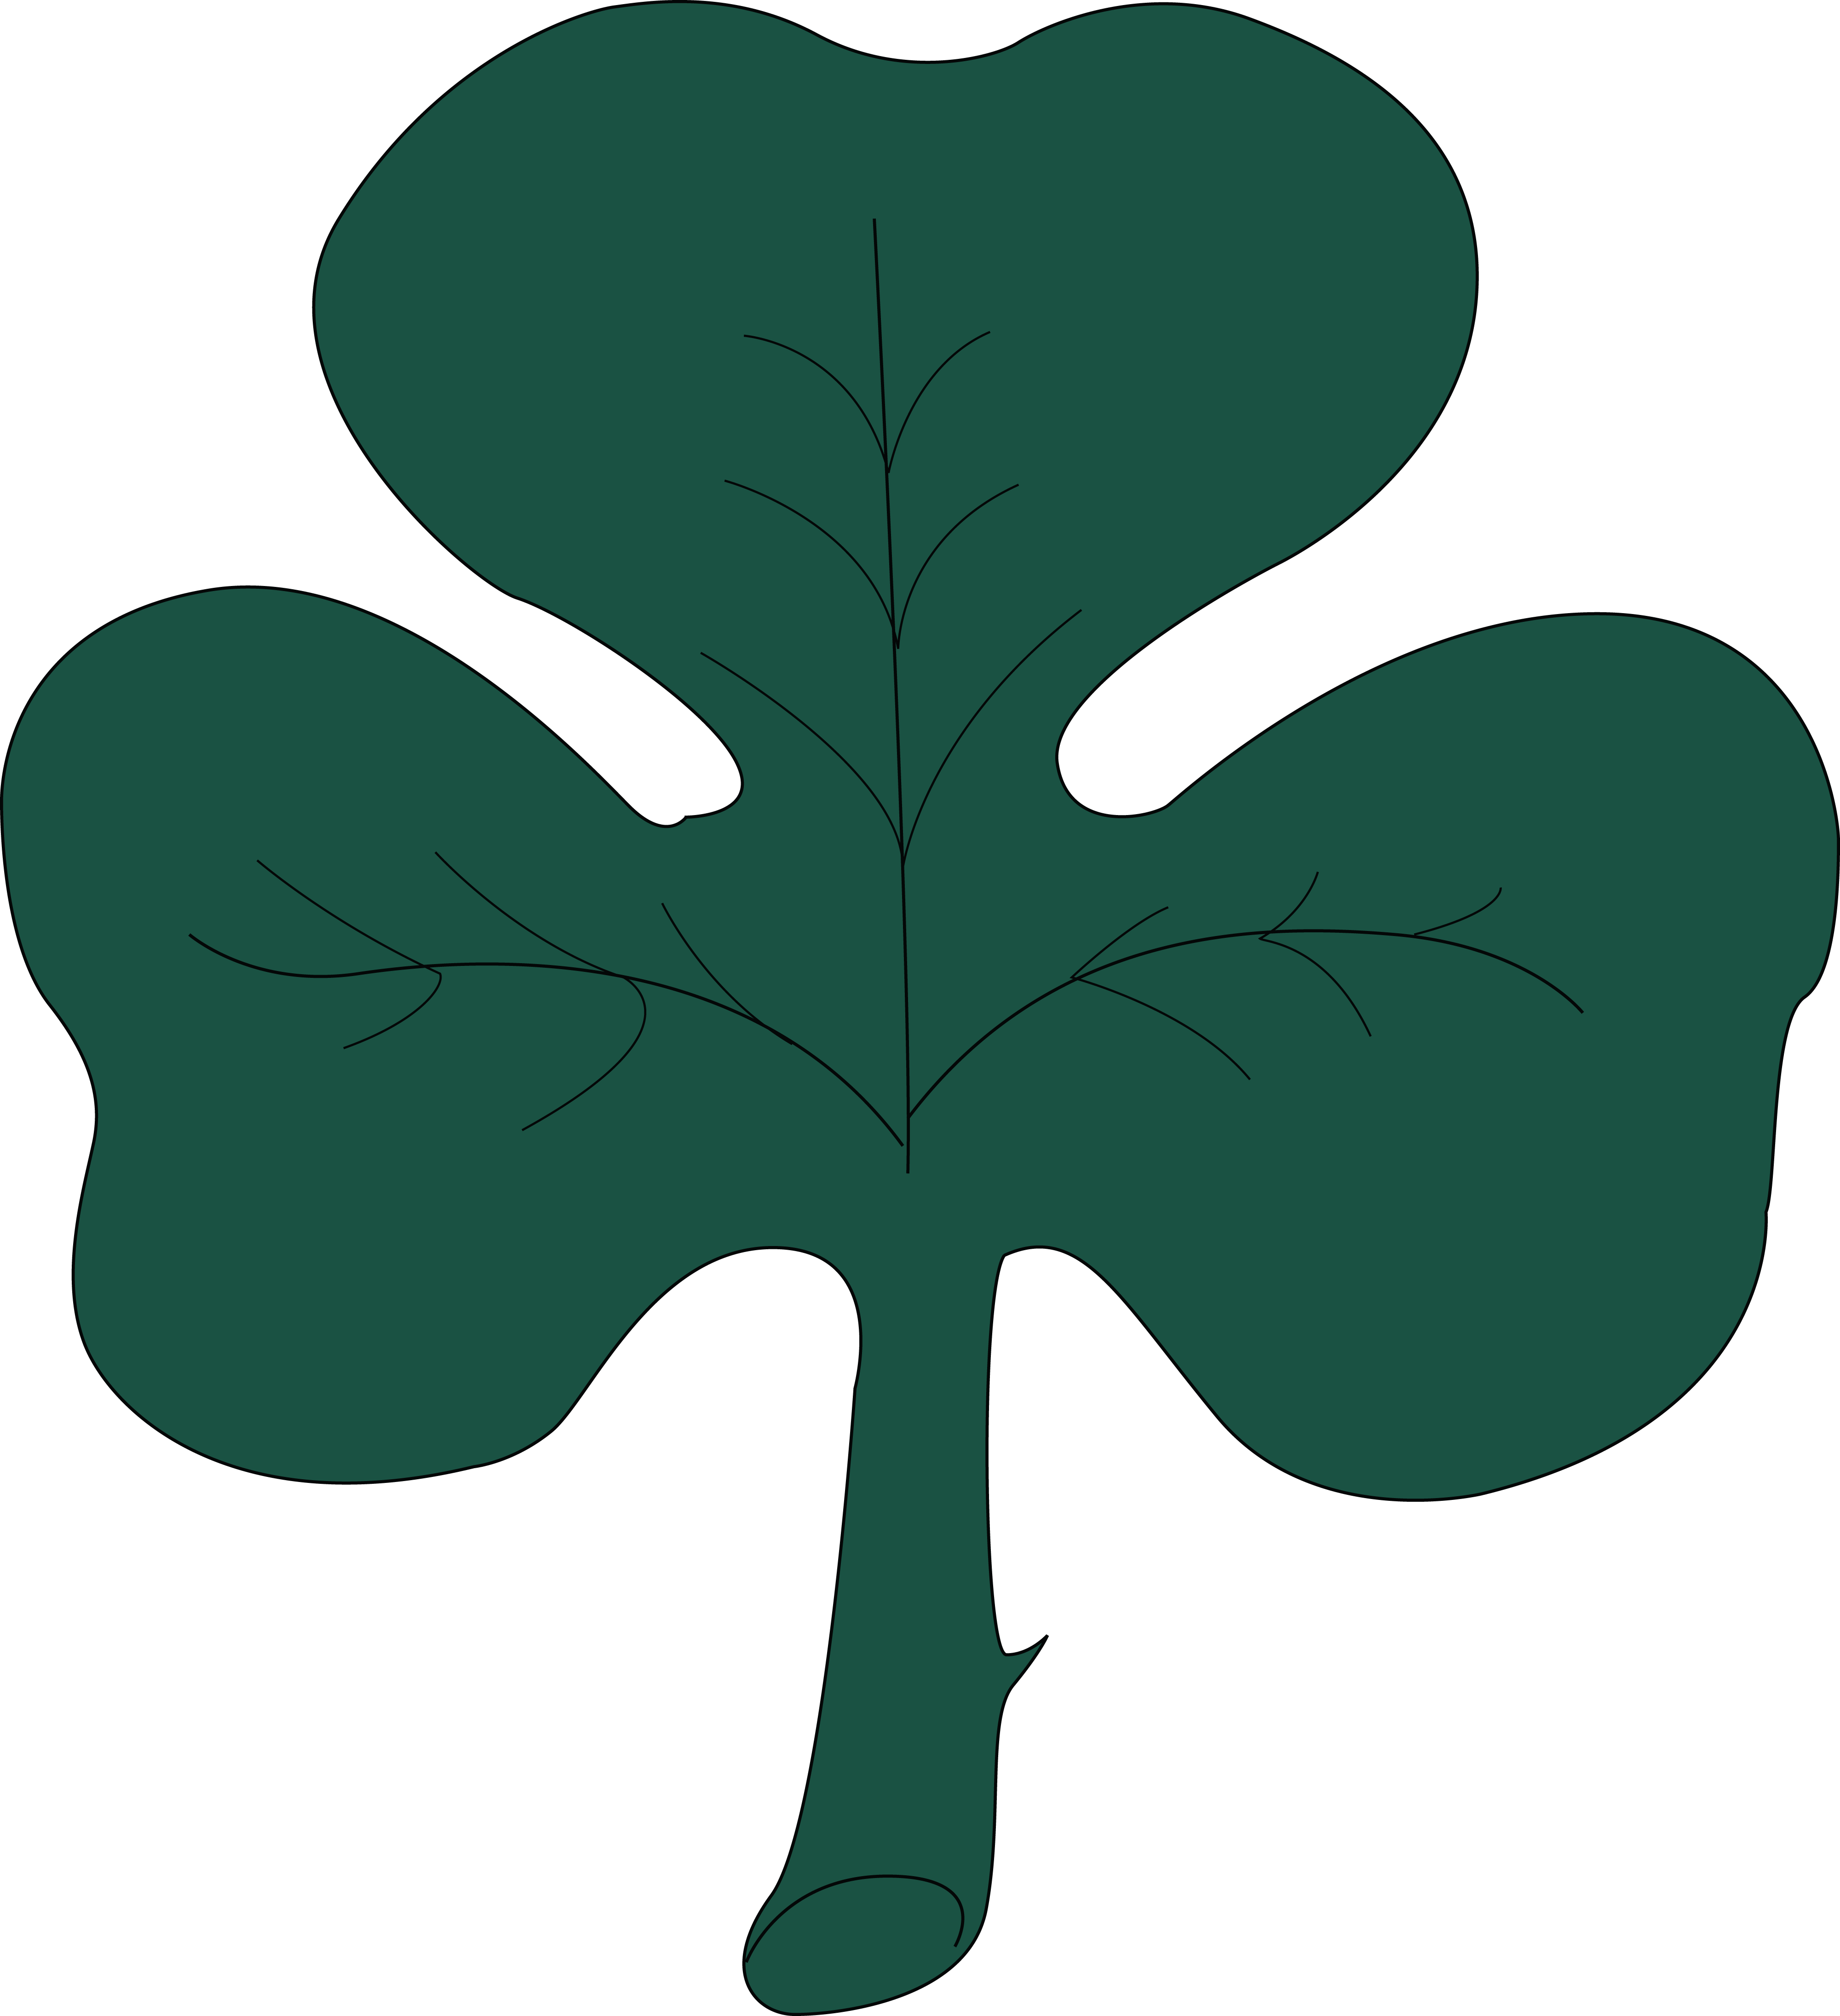 Wreath clover clipart jpg download 14 cliparts for free. Download Clover clipart wreath and use ... jpg download